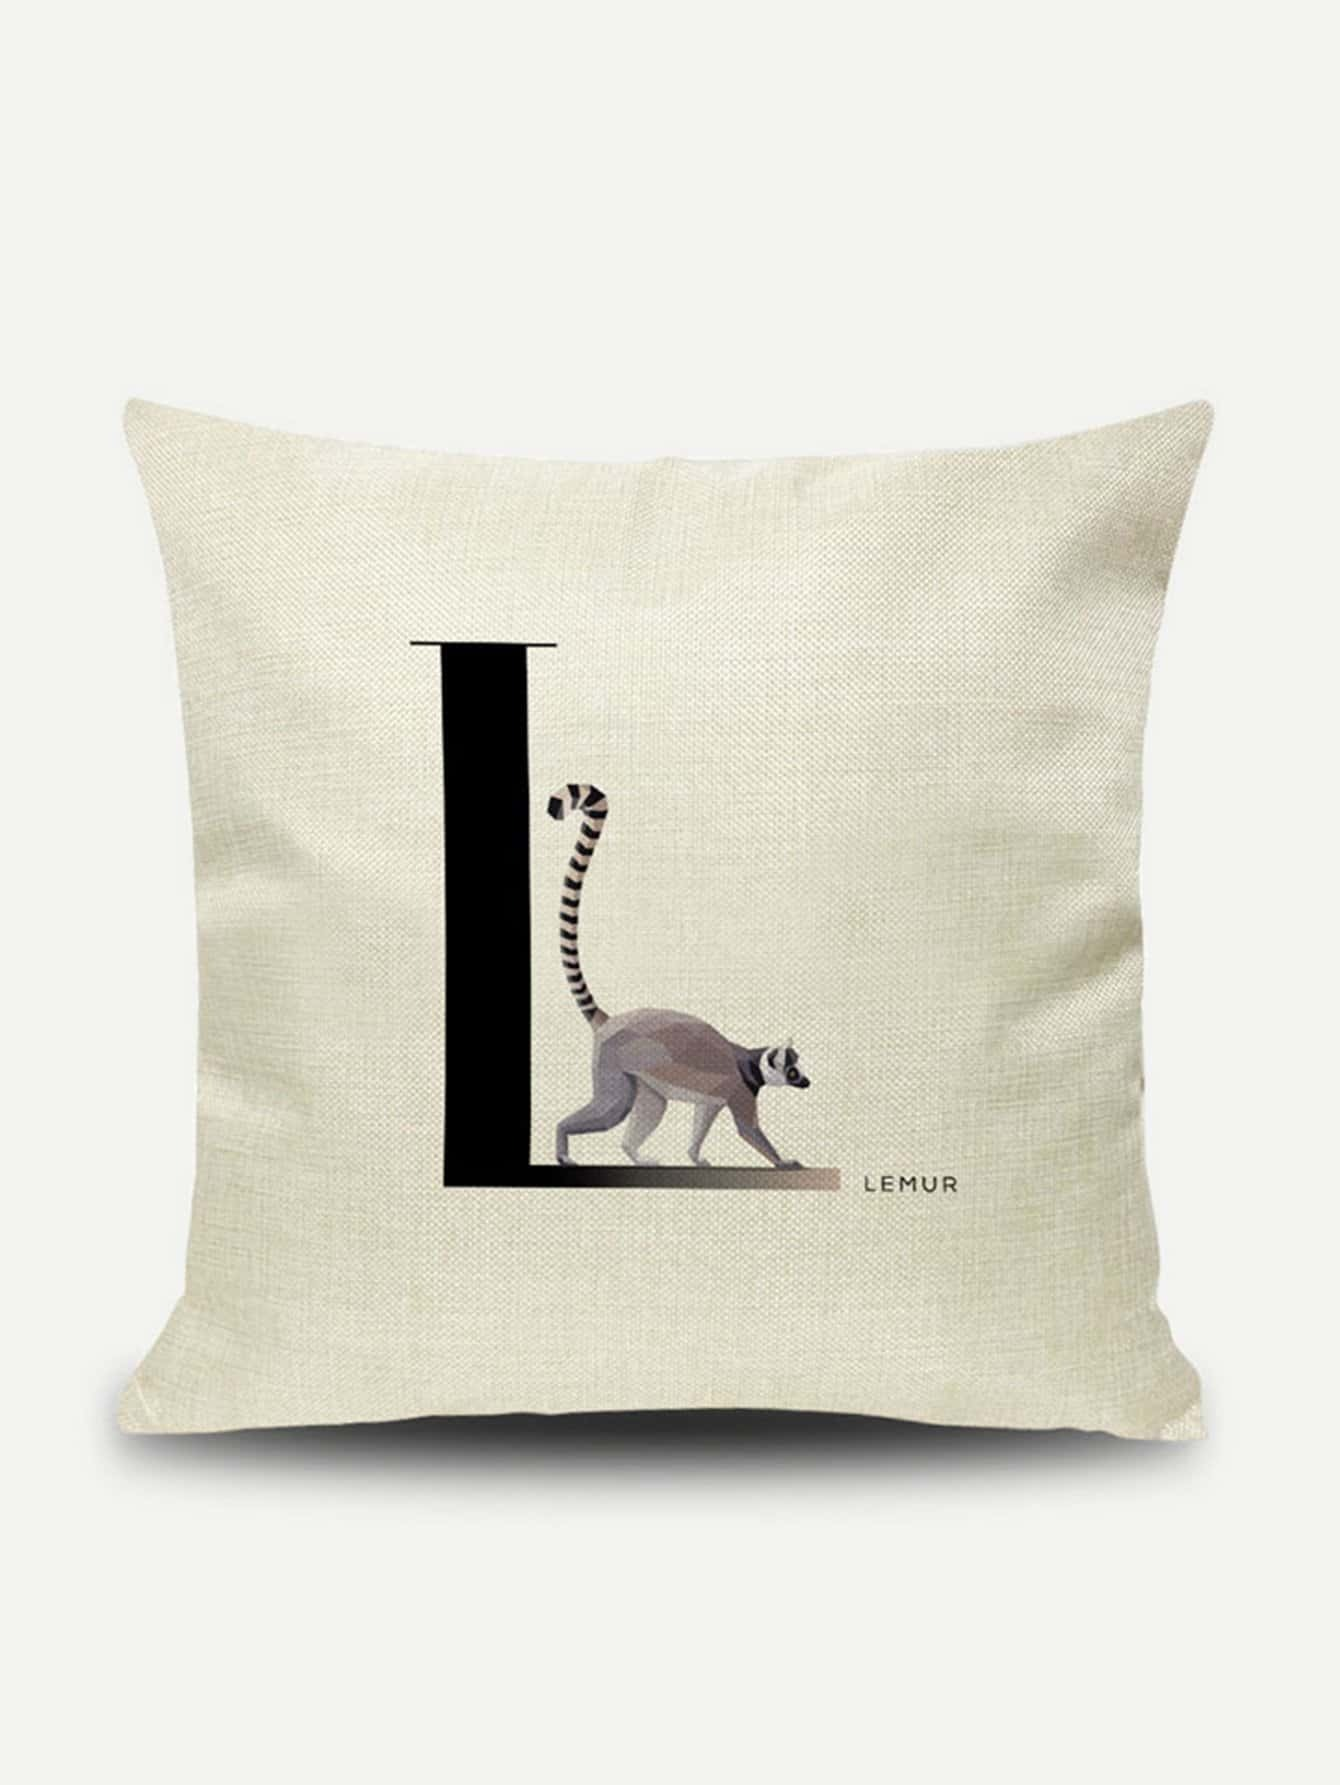 Lemur Print Pillow Cover baby animals take a bath